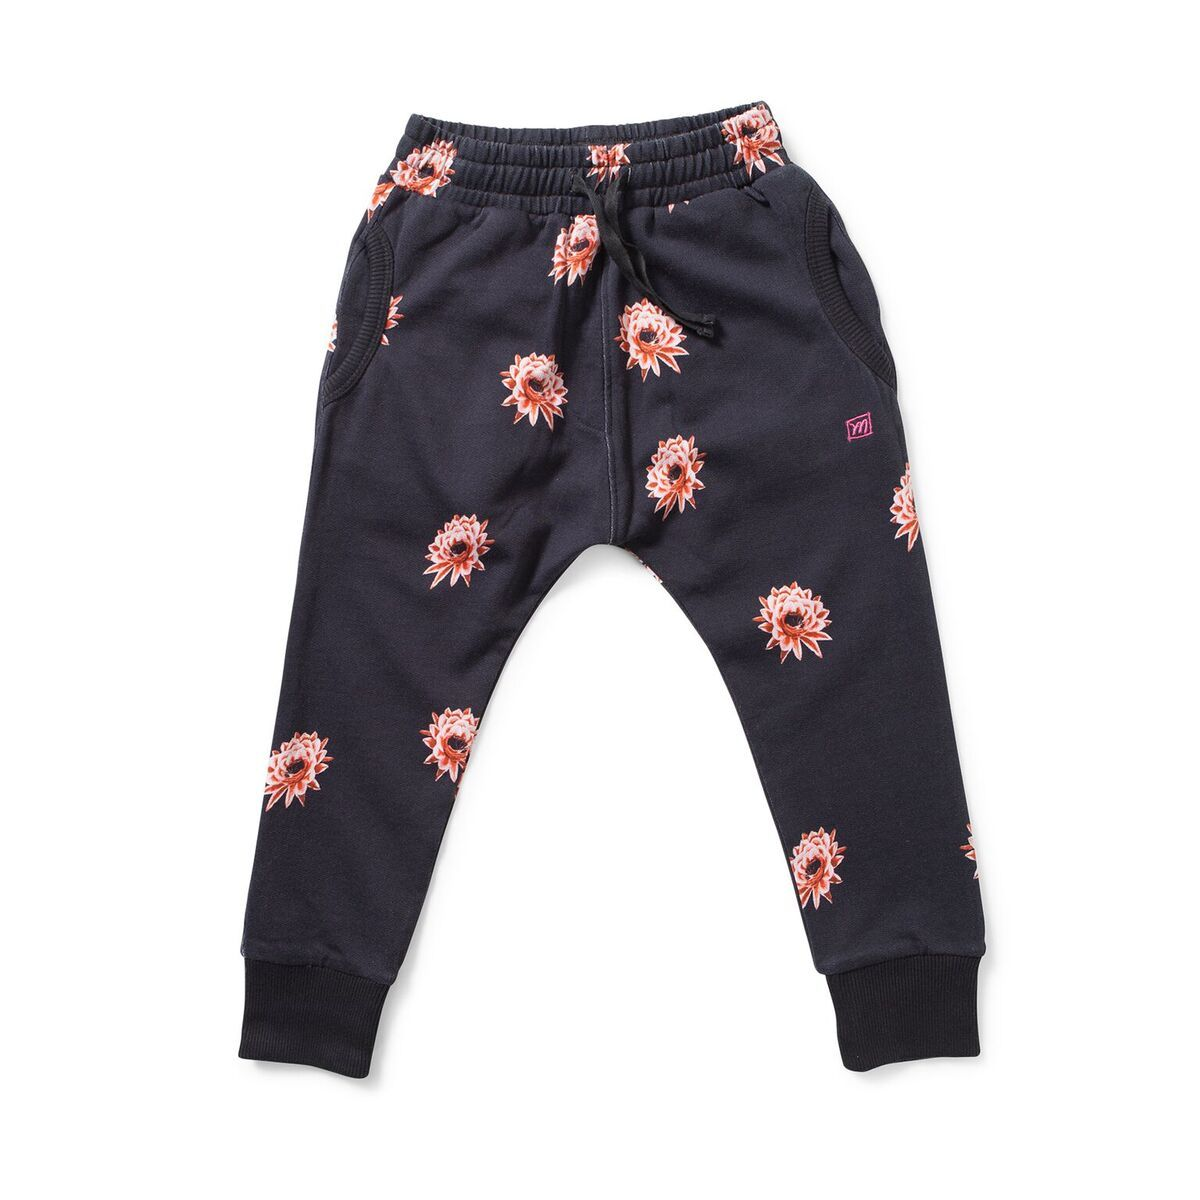 TWEED Flower Print Track Pant